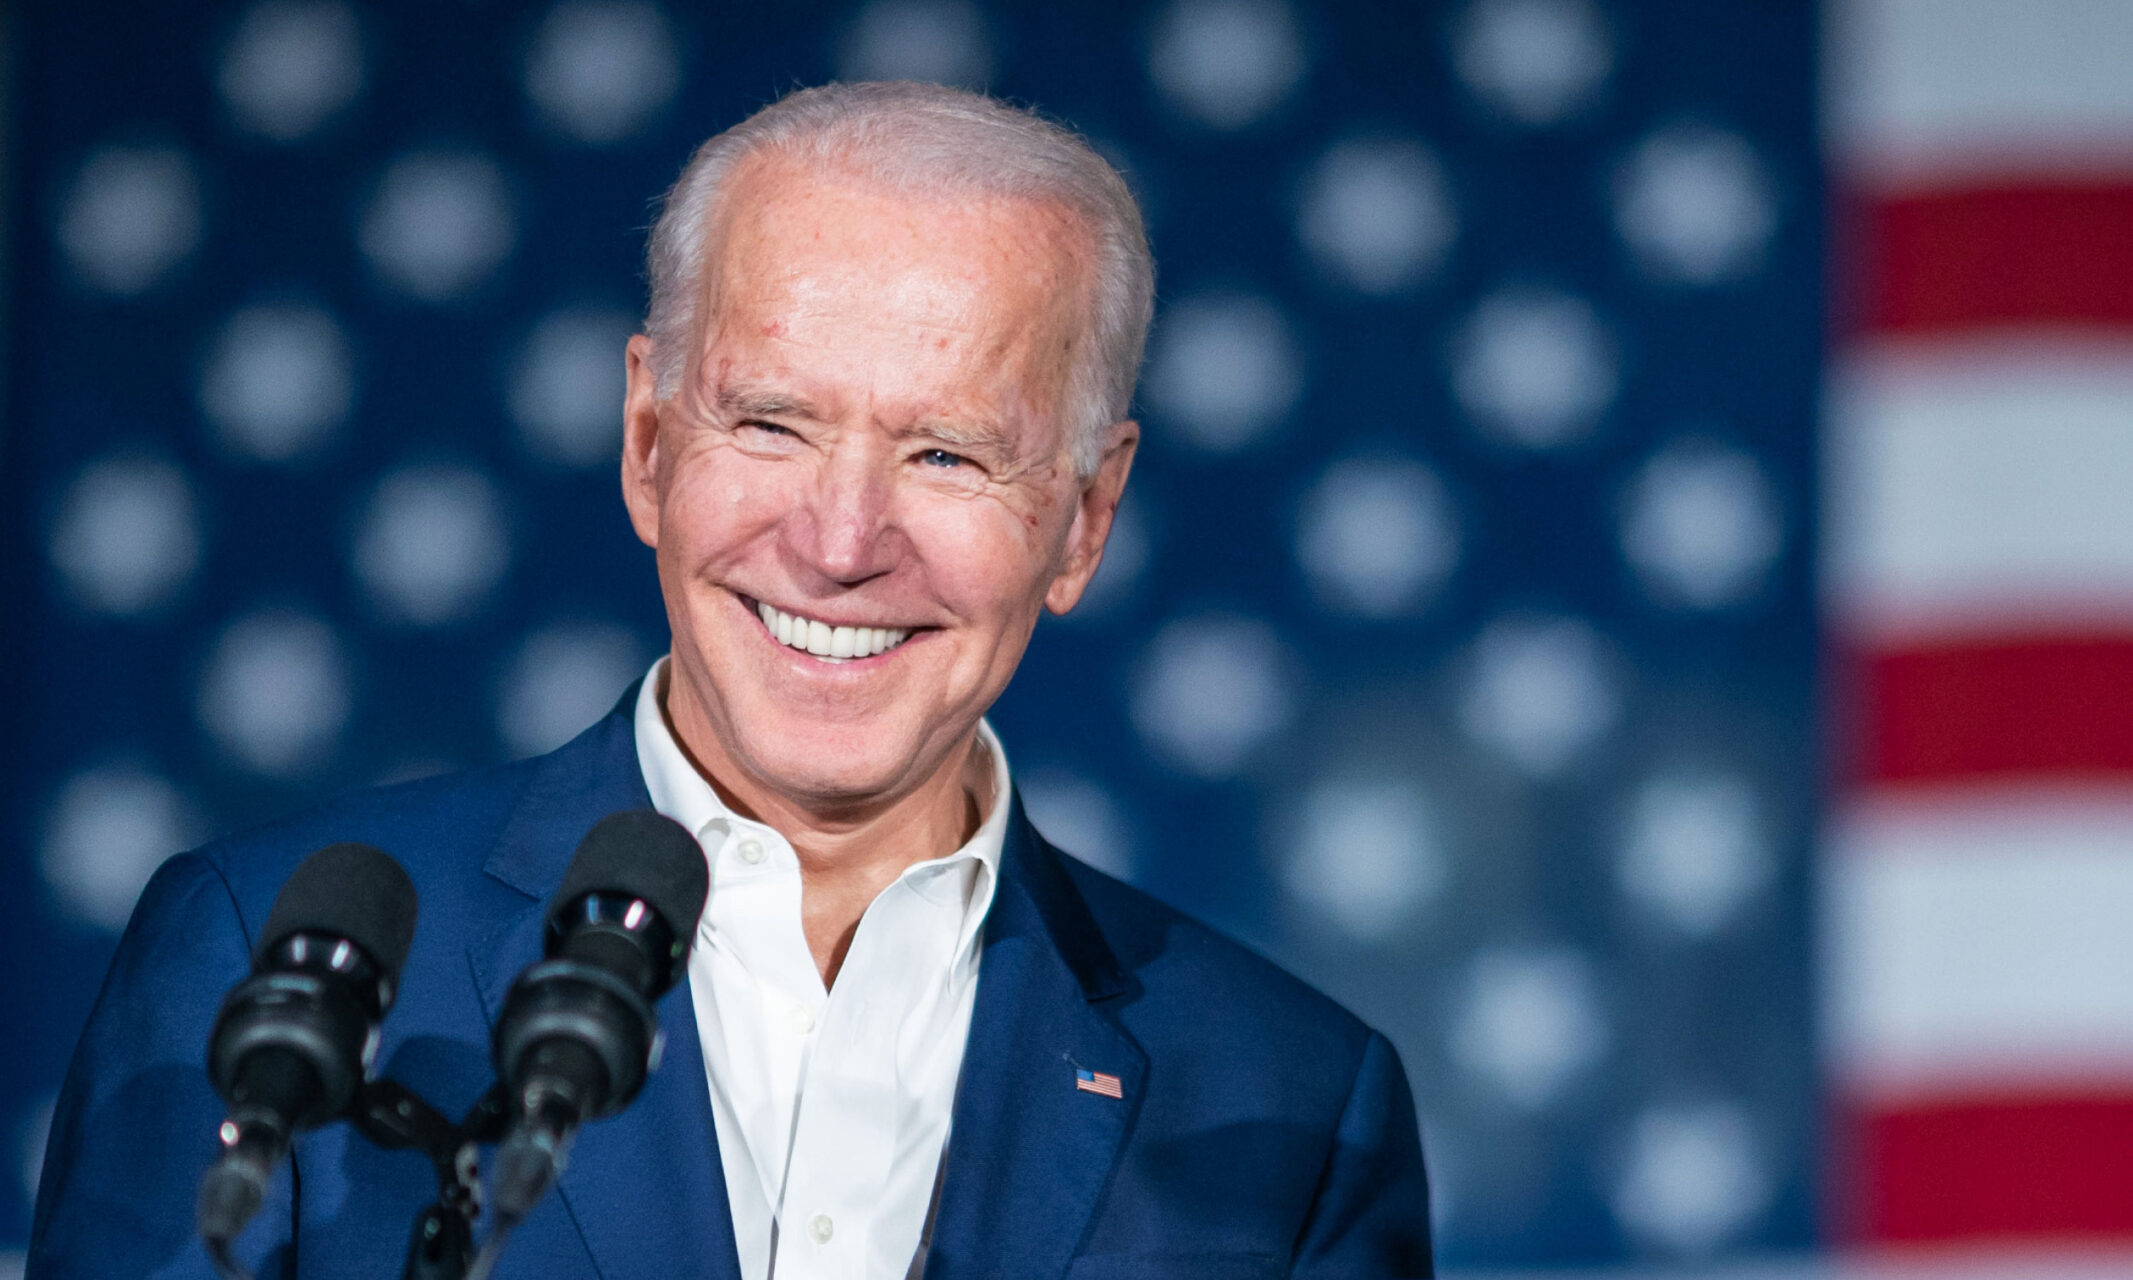 President Joe Biden speaks at an event in Jackson, Mississippi, standing in front of an American flag. (File photo courtesy of the White House)